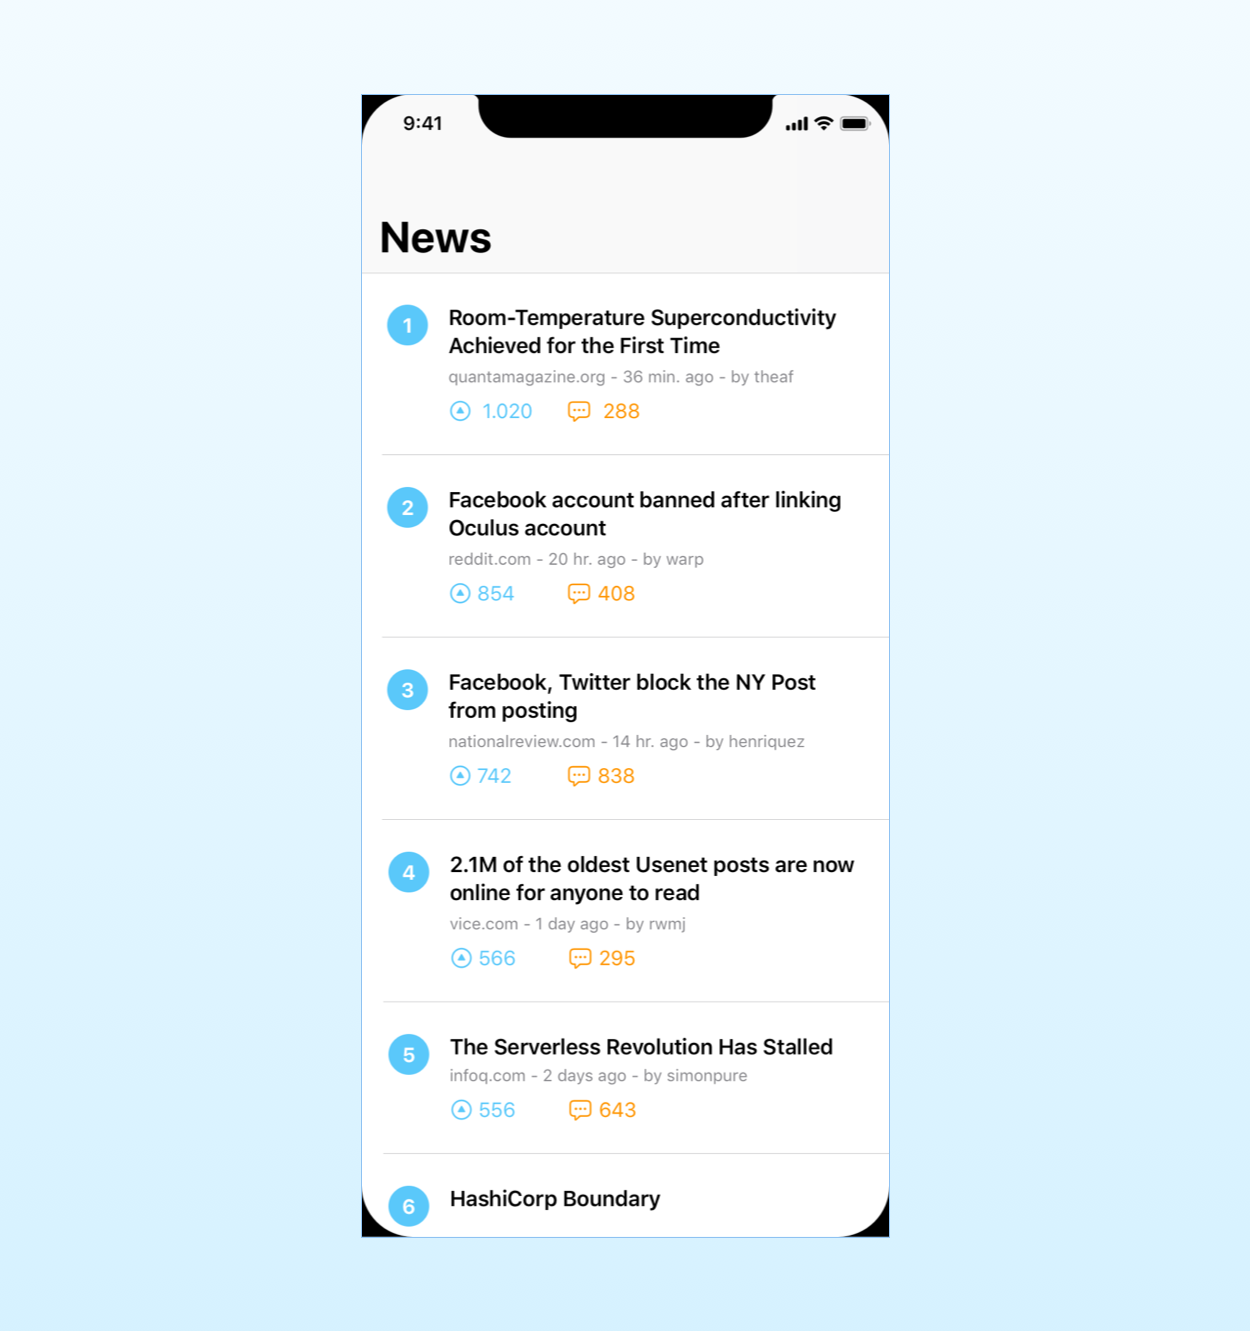 Mockup for the Hacker News app to illustrate the MVVM pattern in SwiftUI